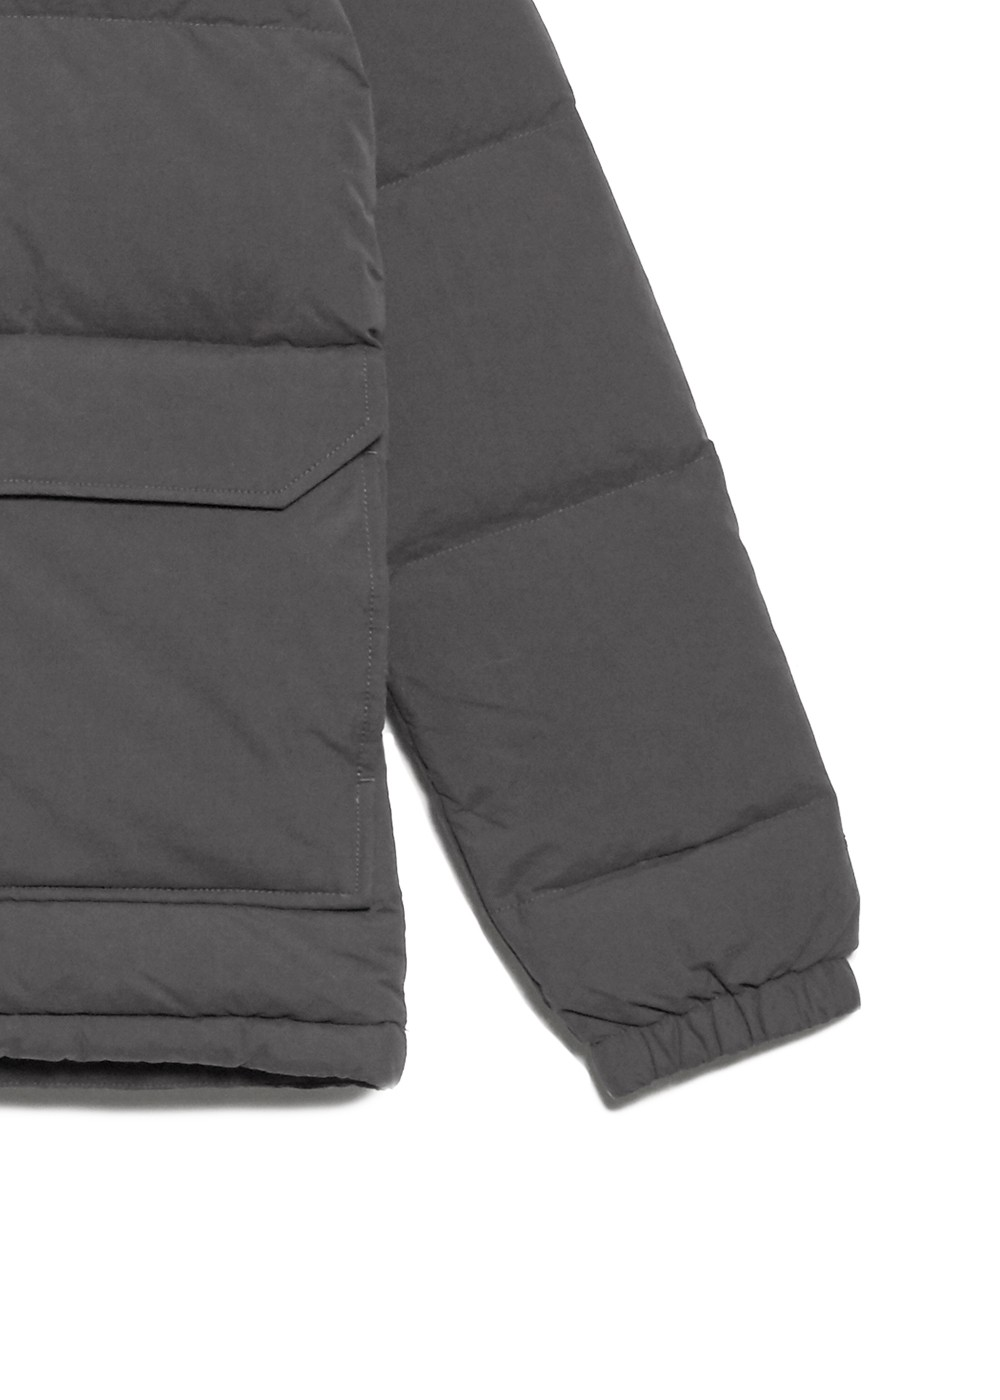 【最大25%OFF】MEN'S DOWN SIERRA 2.0 JK|WEATHERED BLACK|メンズコート|THE NORTH FACE